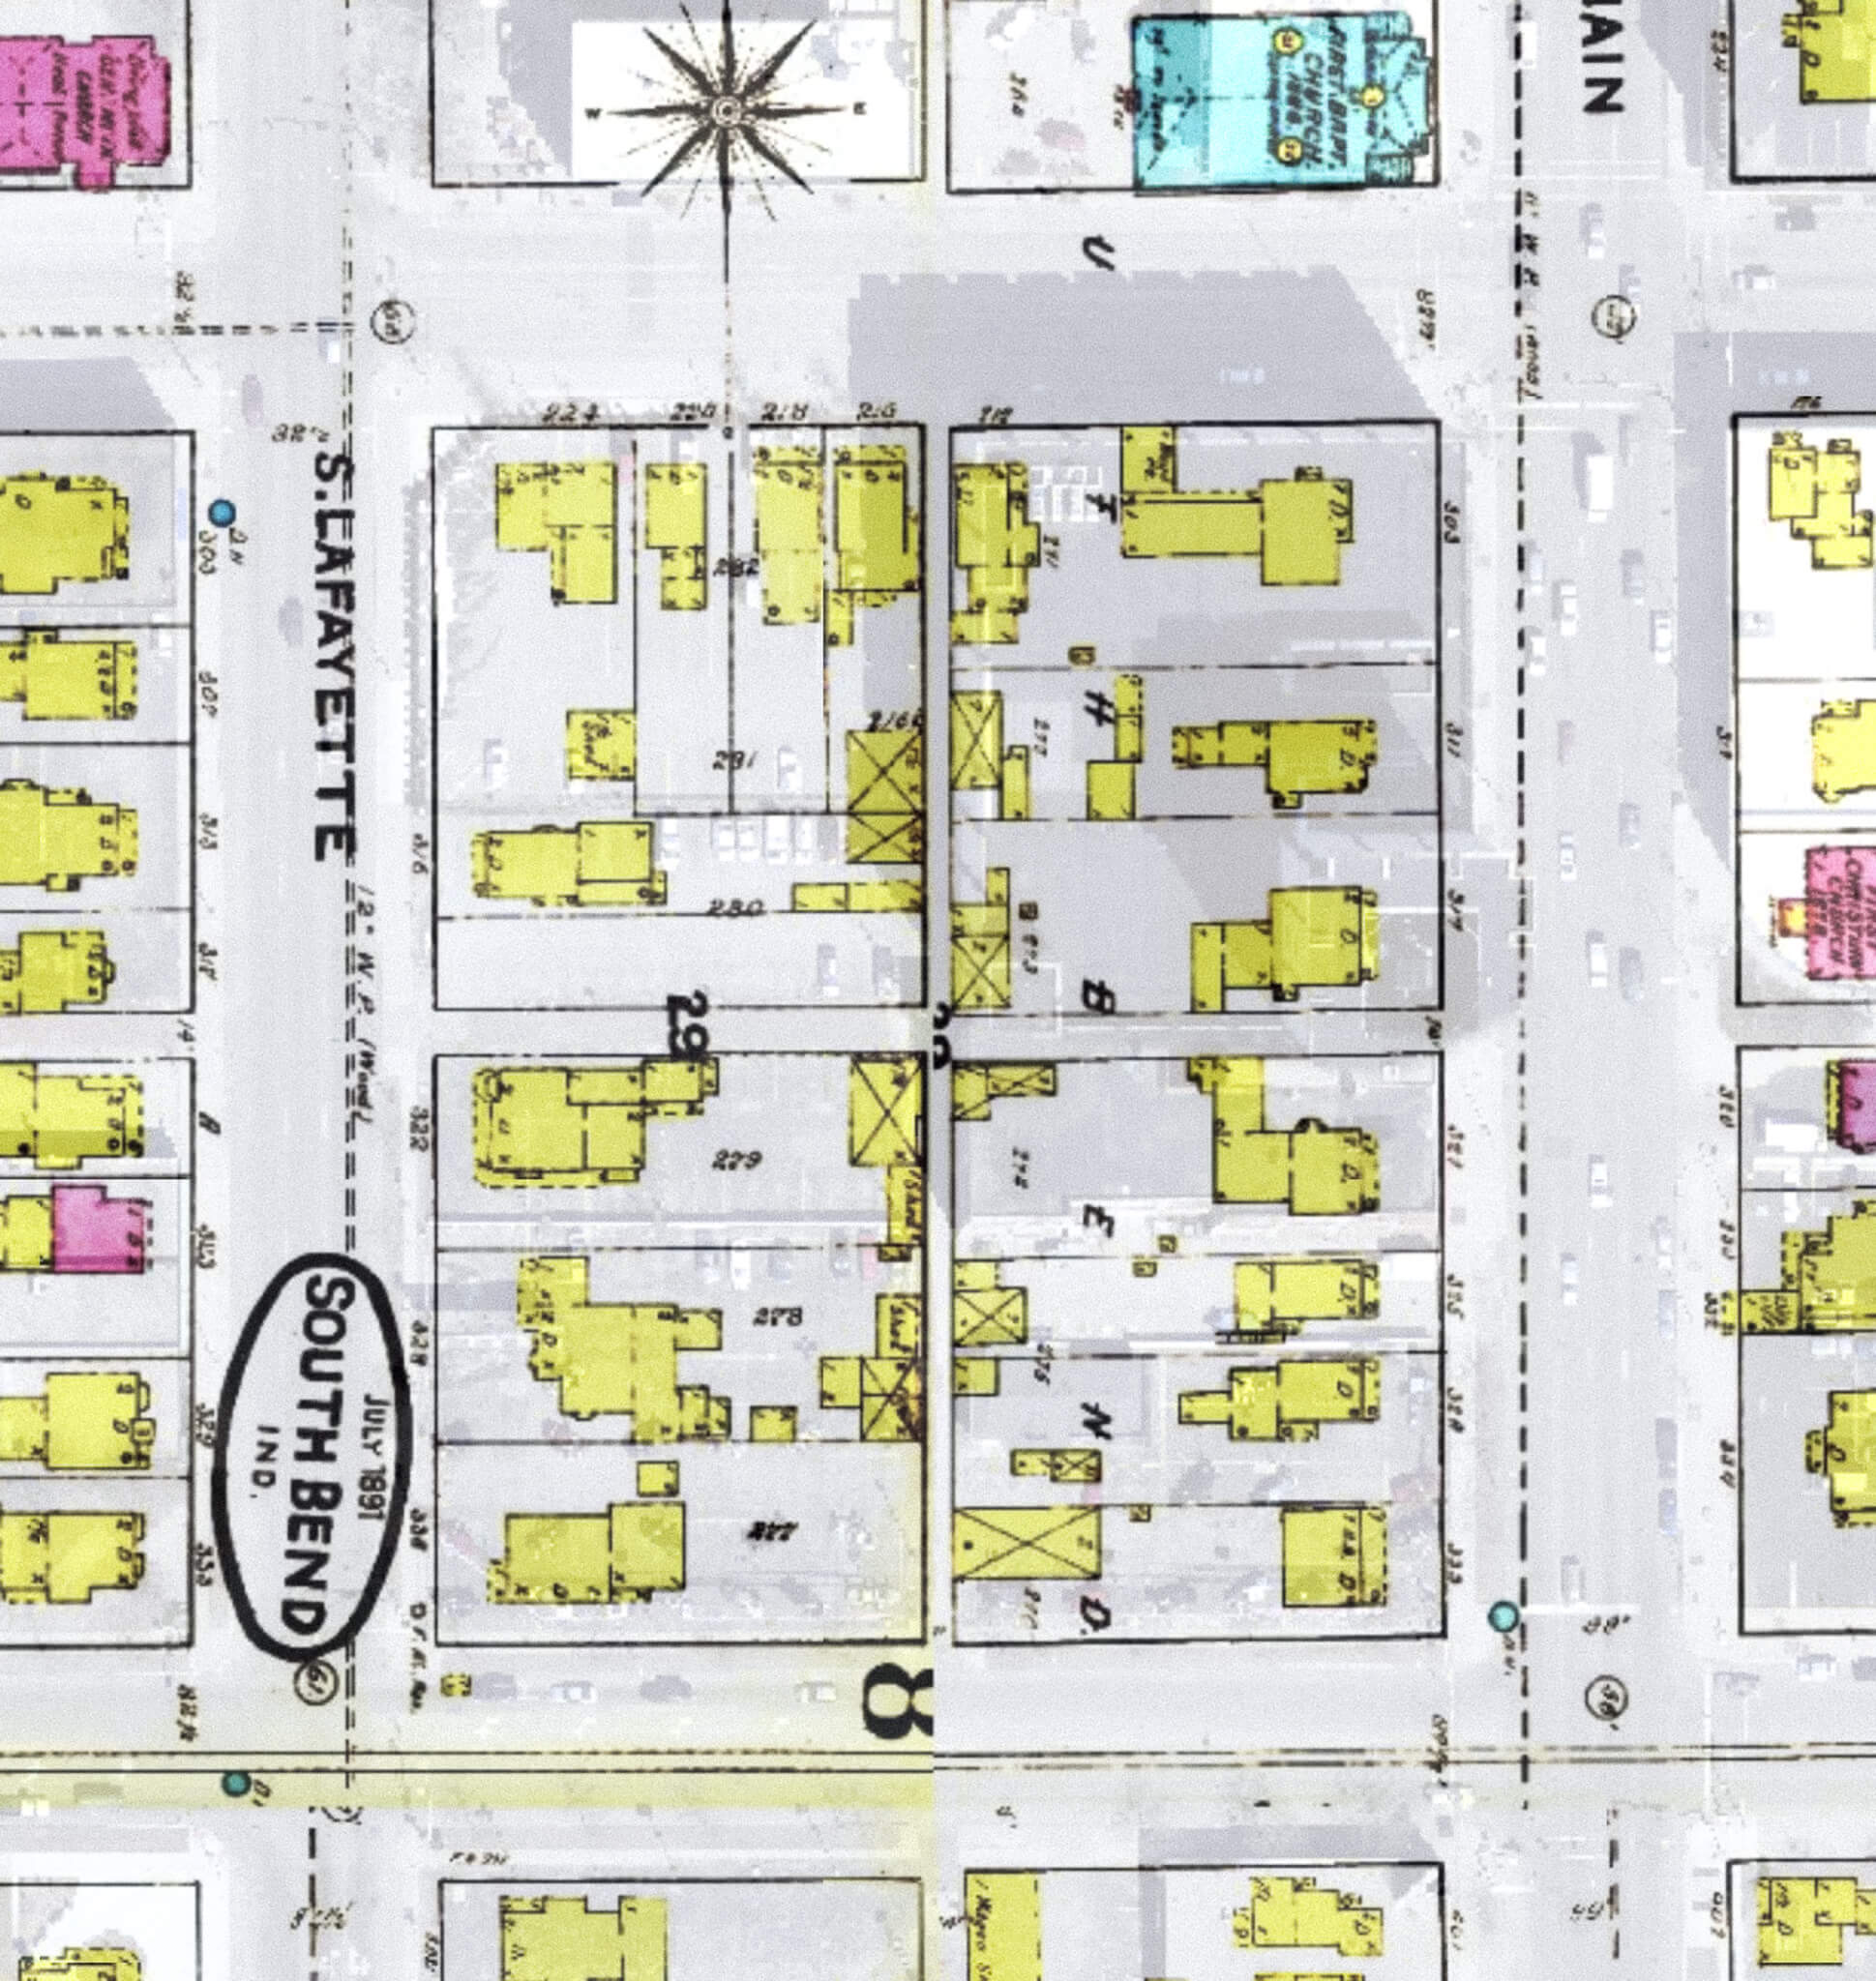 1891 map of the block, with the building shown near the bottom right corner.